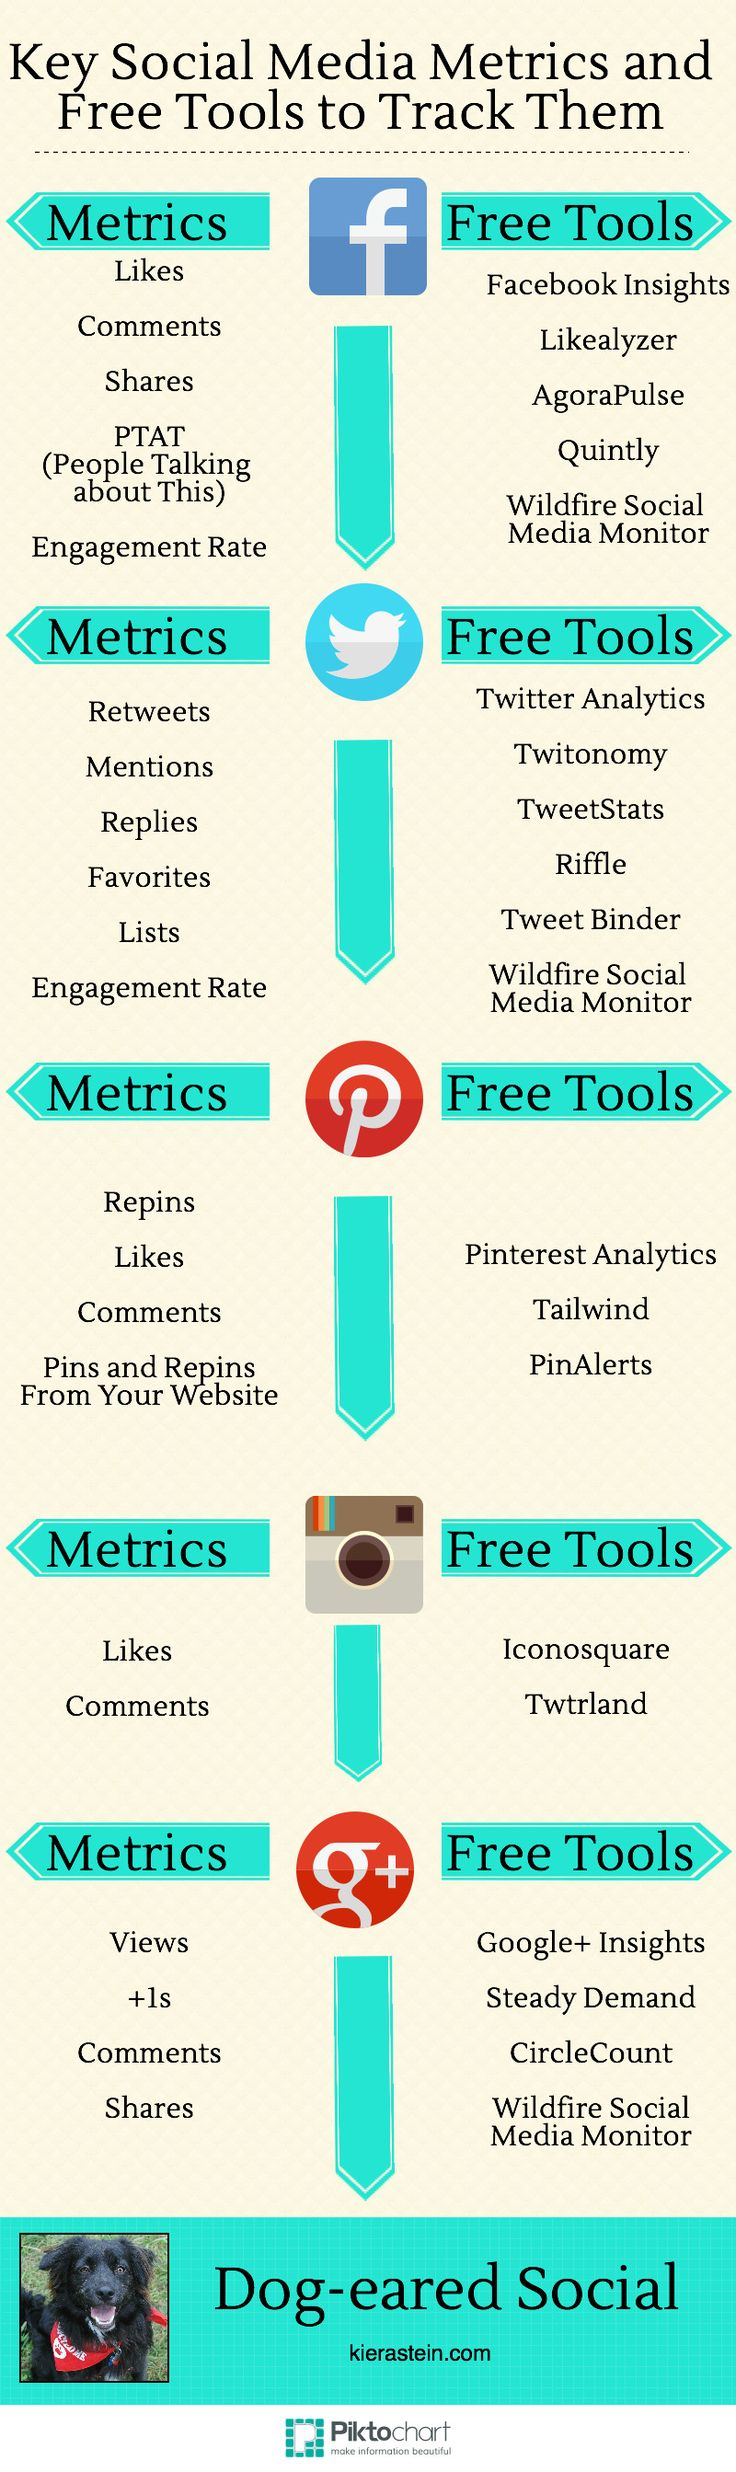 Herramientas para medir Social Media Facebook, Twitter, Pinterest, Instagram and Google+